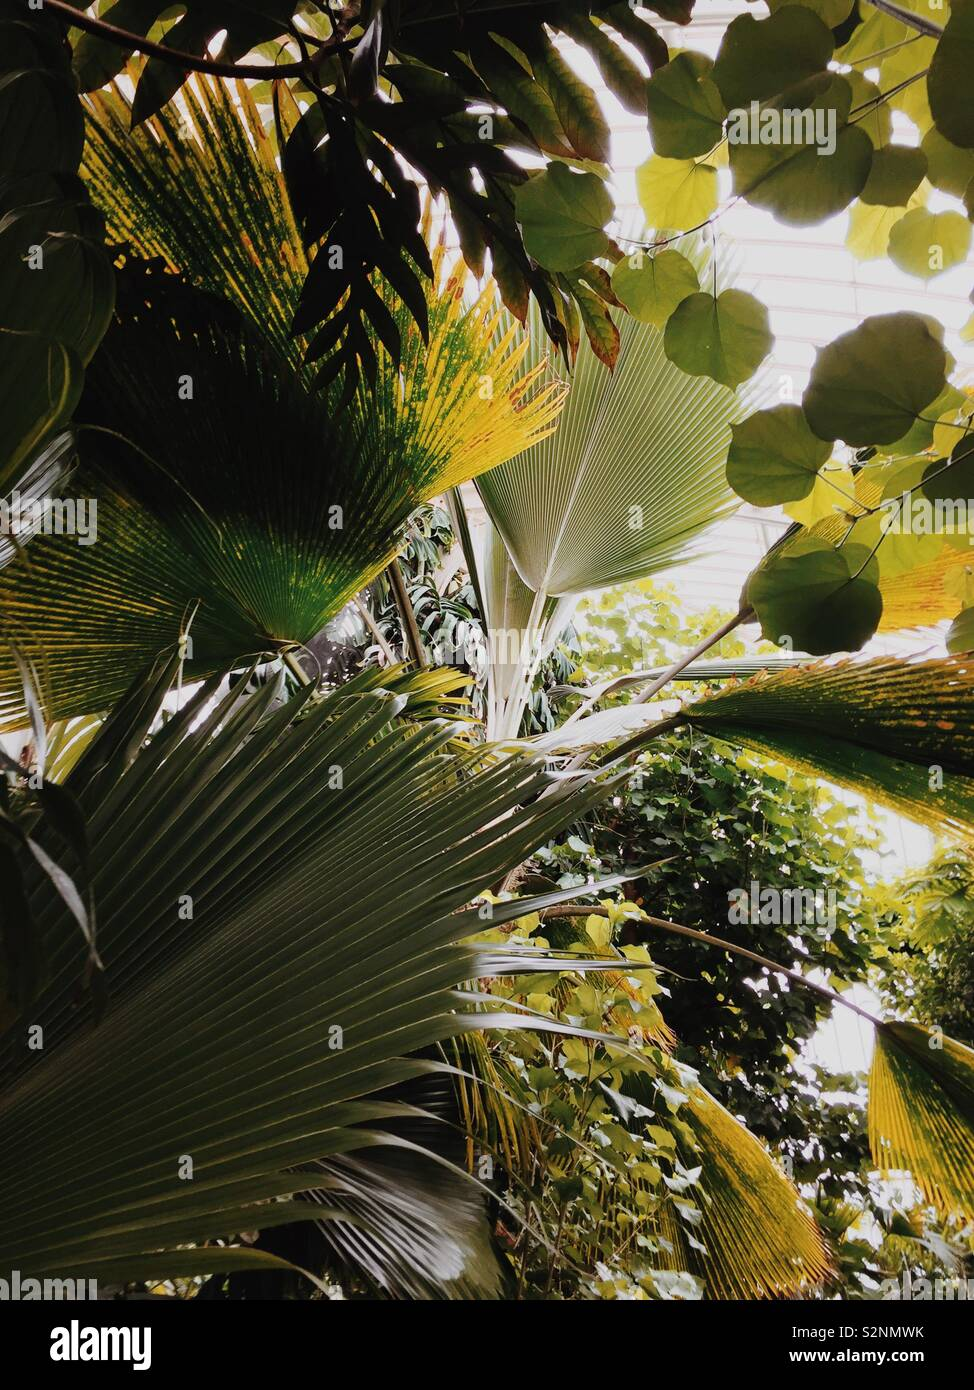 Giant palm leaves in greenhouse at Kew Gardens Stock Photo